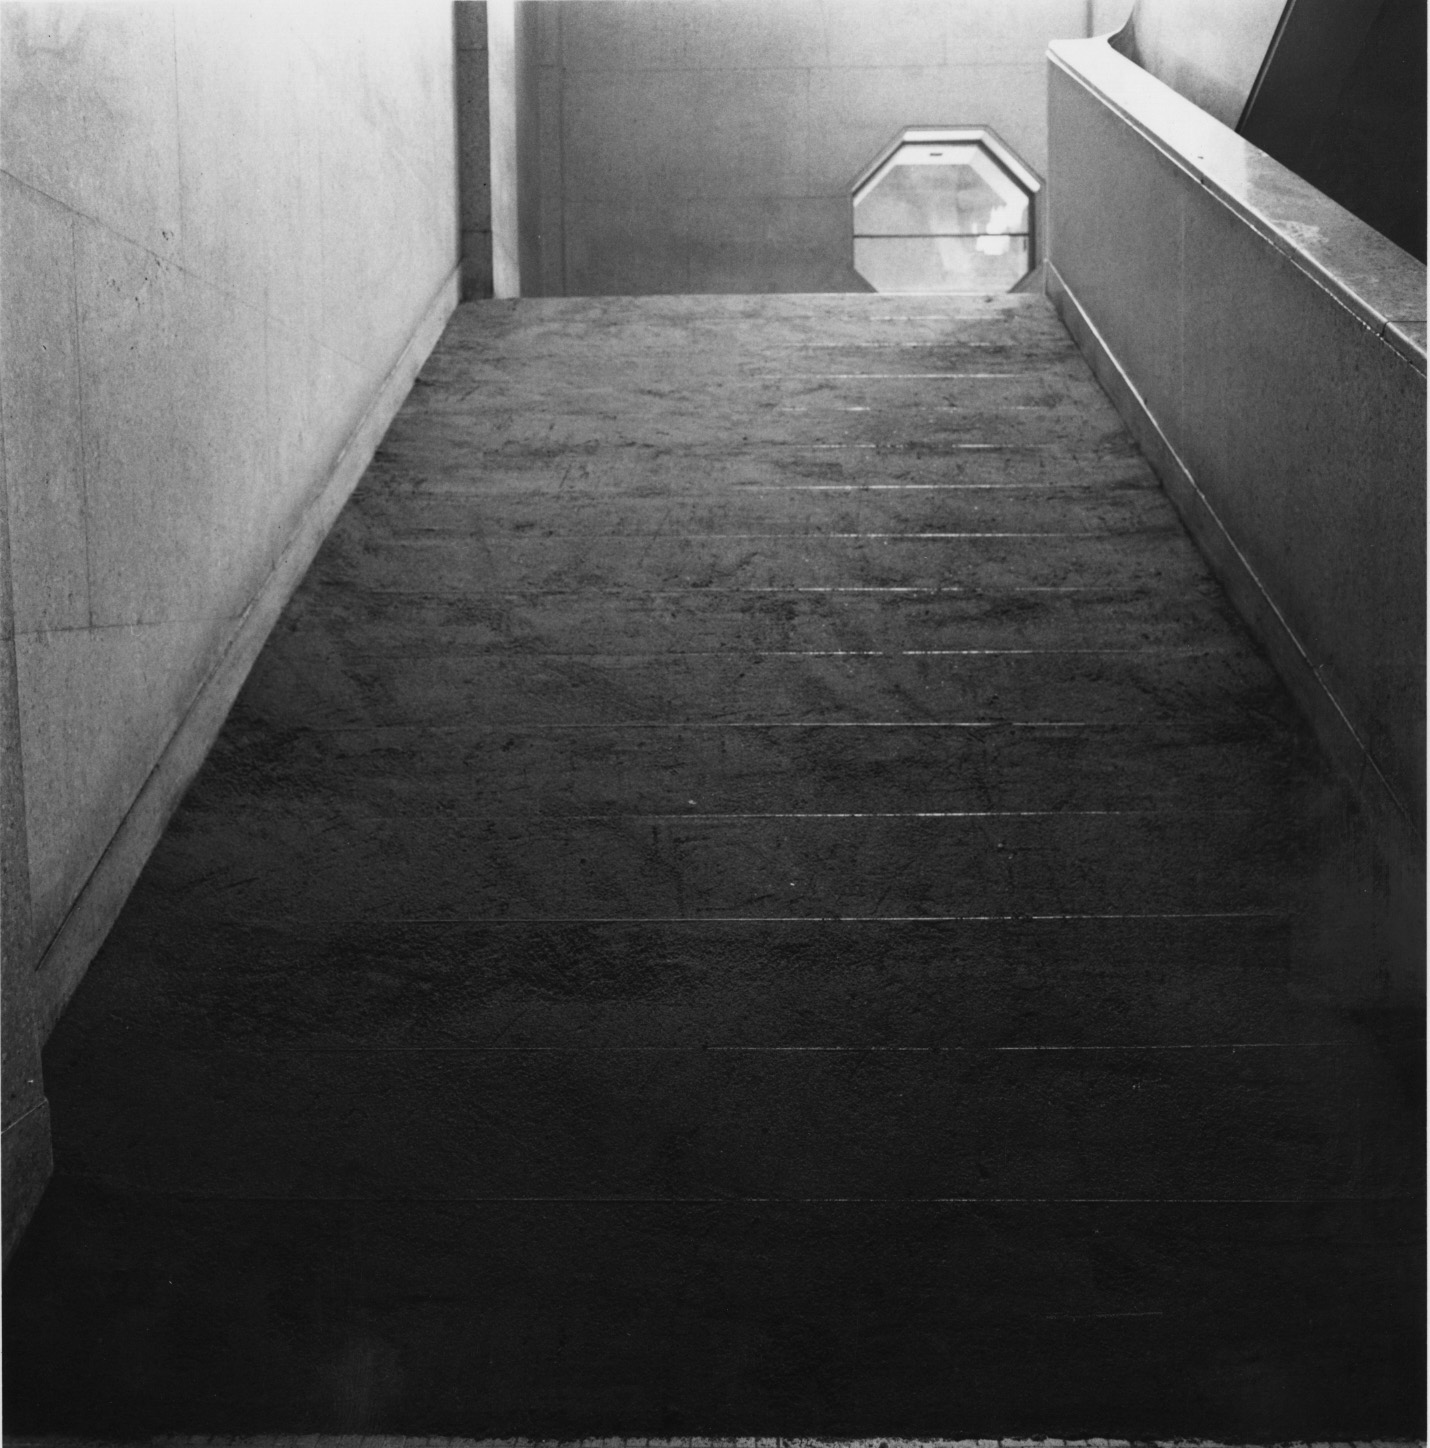 Infinite Situation II (steps) , 1970 無限状況 II (階段)( M  ugen Jōkyō II [Kaidan])  Sand, stairs Dimensions variable Installation view, Trends in Contemporary Art ,National Museum of Modern Art, Kyoto 1970 Photo: Shigeo Anzaï